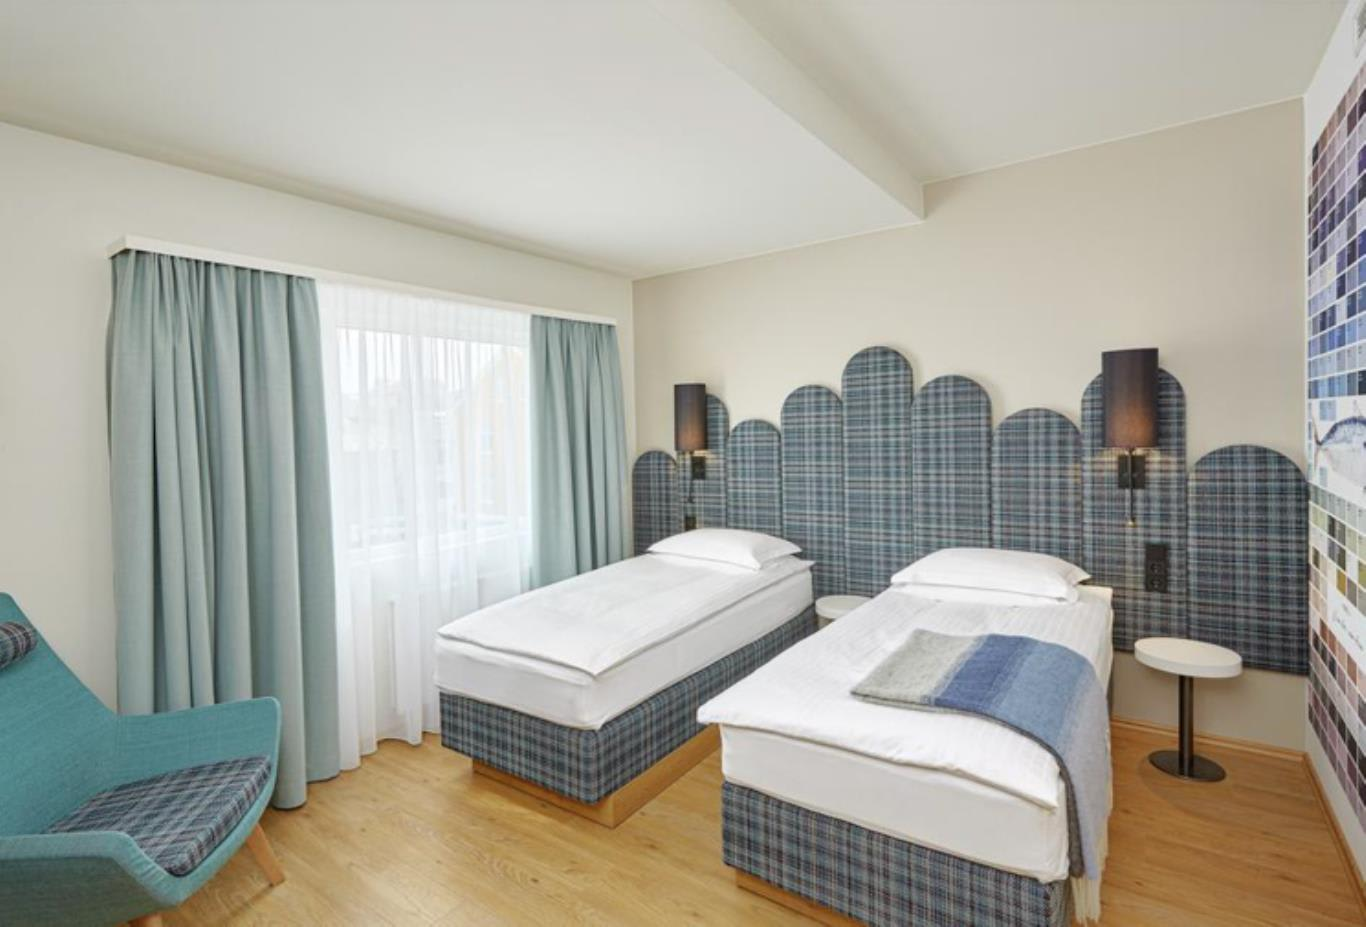 Deluxe Double or Twin Room twin rooms